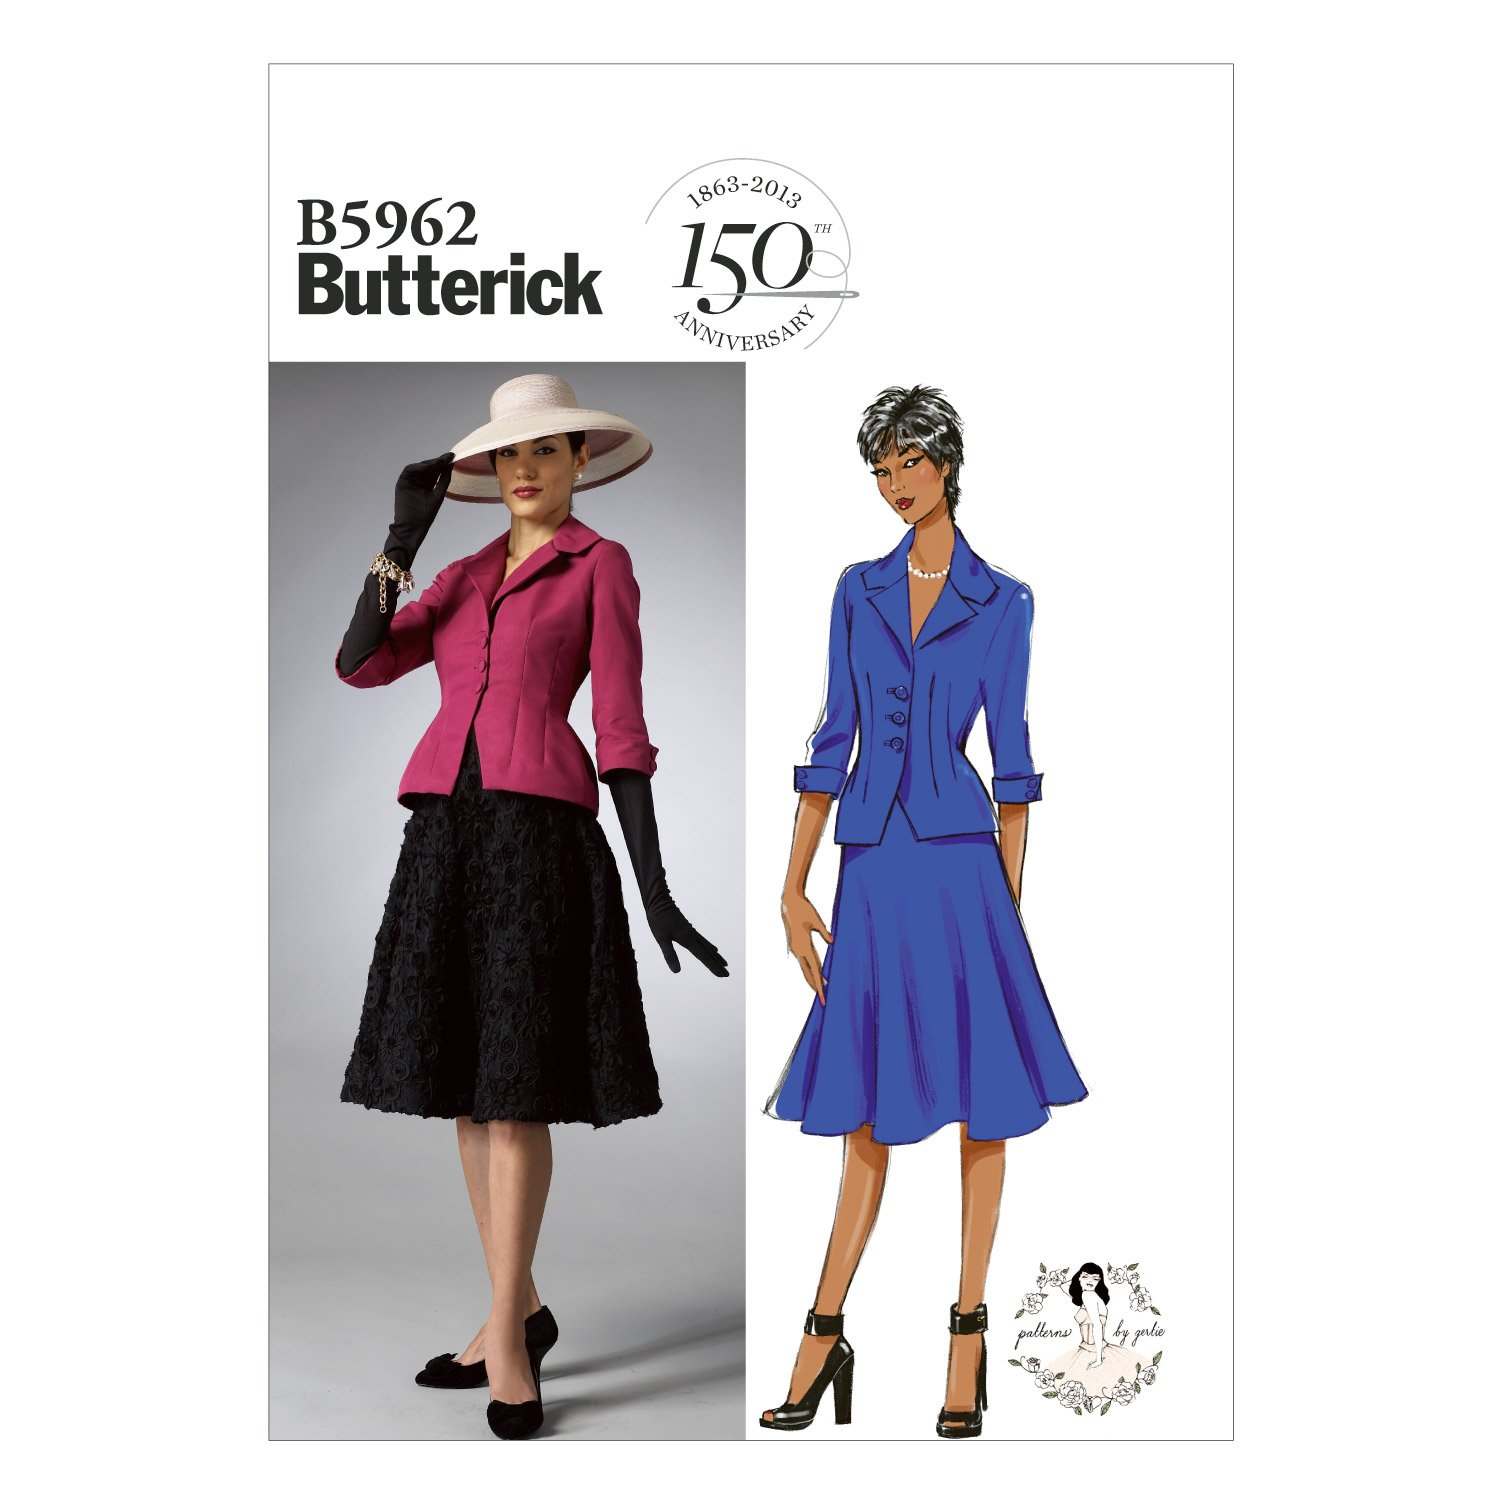 Butterick Patterns B5962 Misses'/Misses' Petite Jacket and Skirt Sewing Templates, Size B5 (8-10-12-14-16) by BUTTERICK PATTERNS